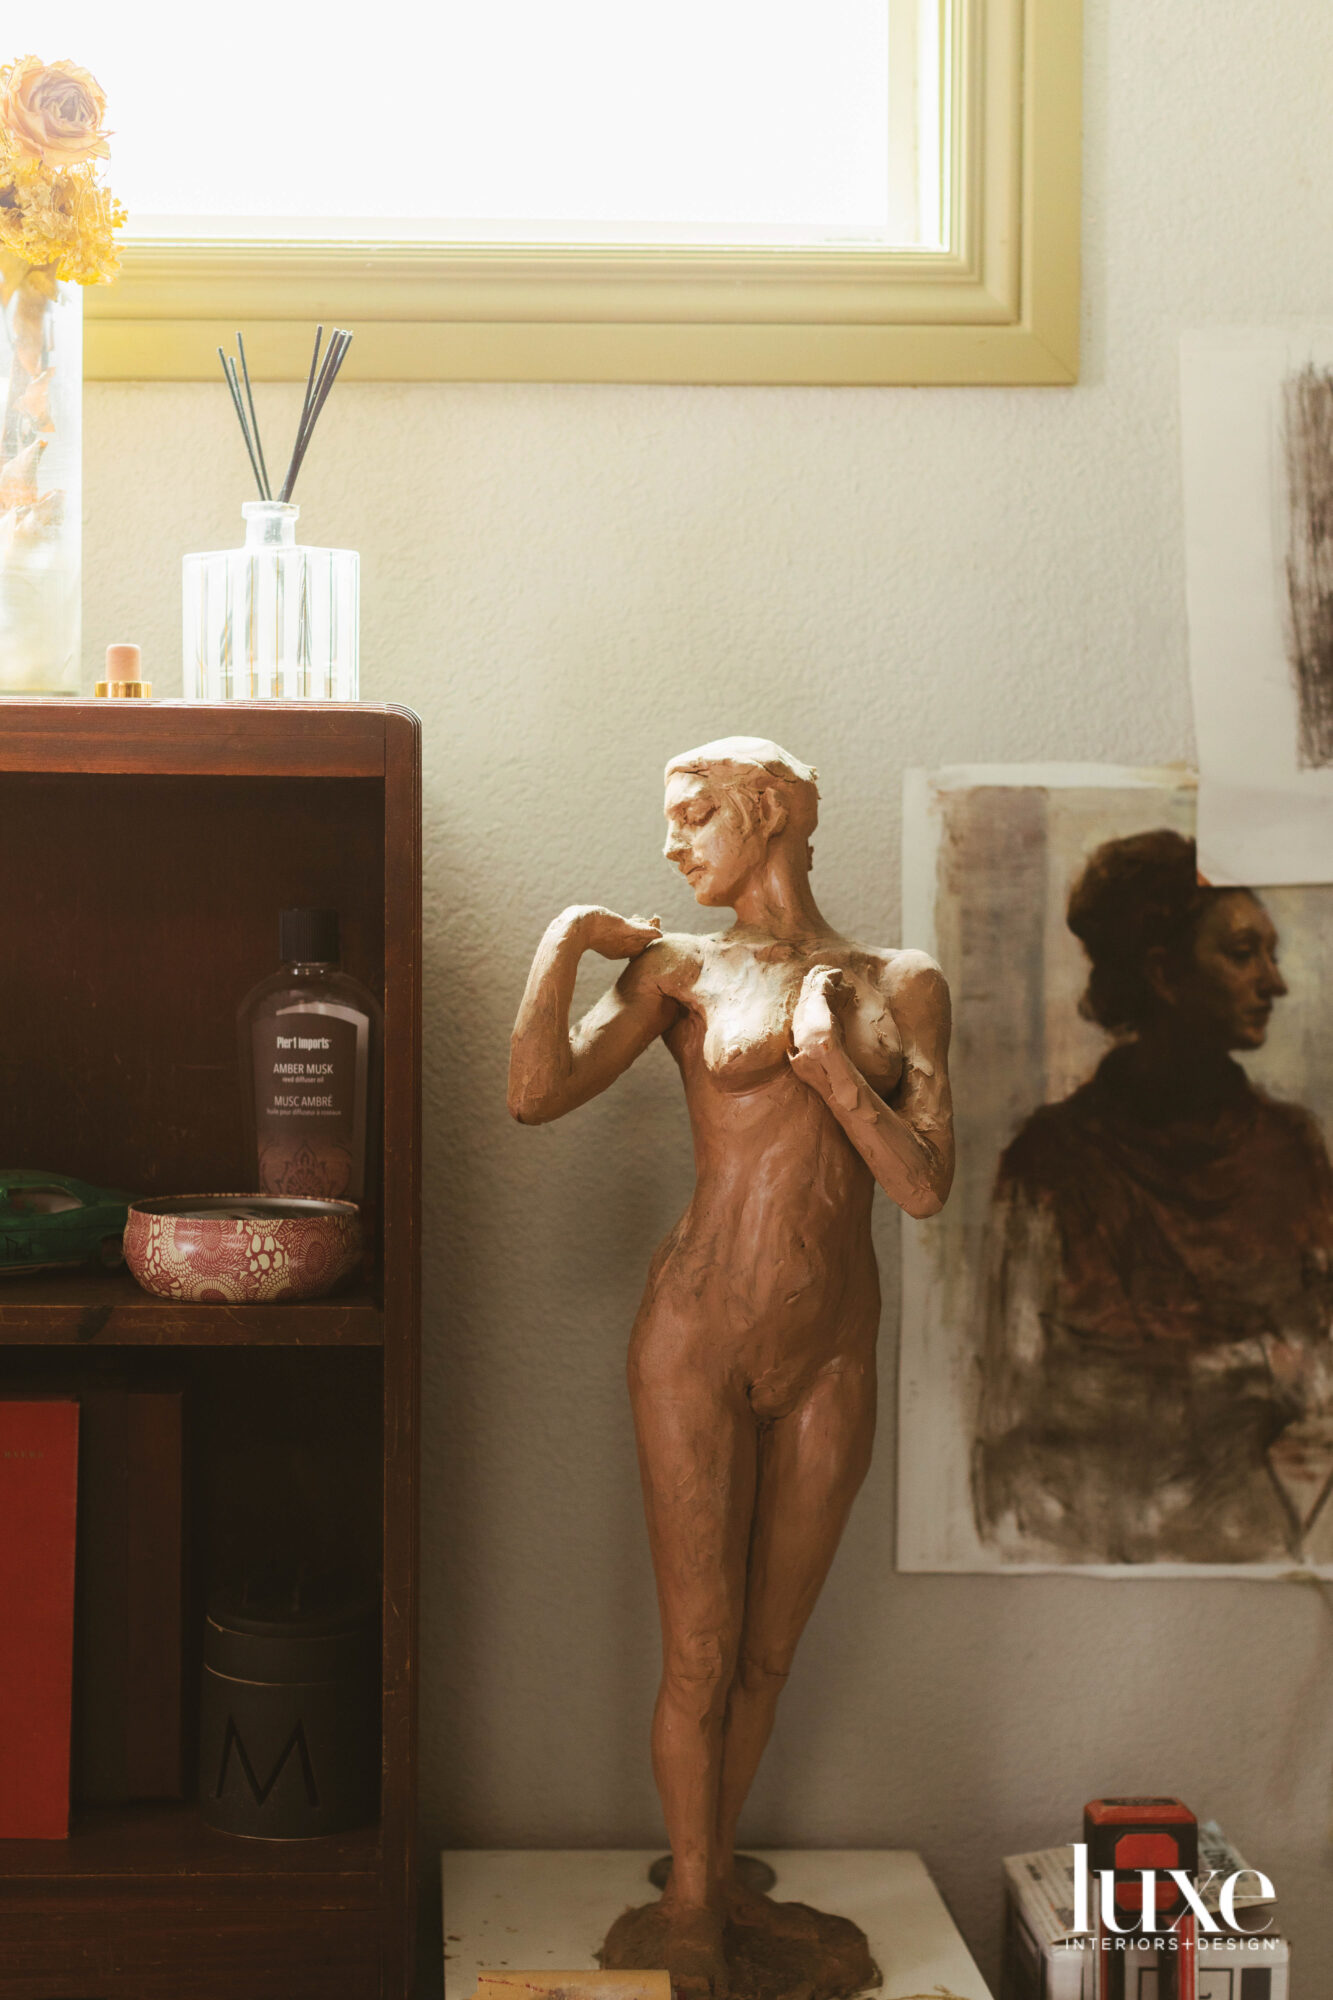 A terracotta-hued sculputure of a woman's form is found in an artist's studio